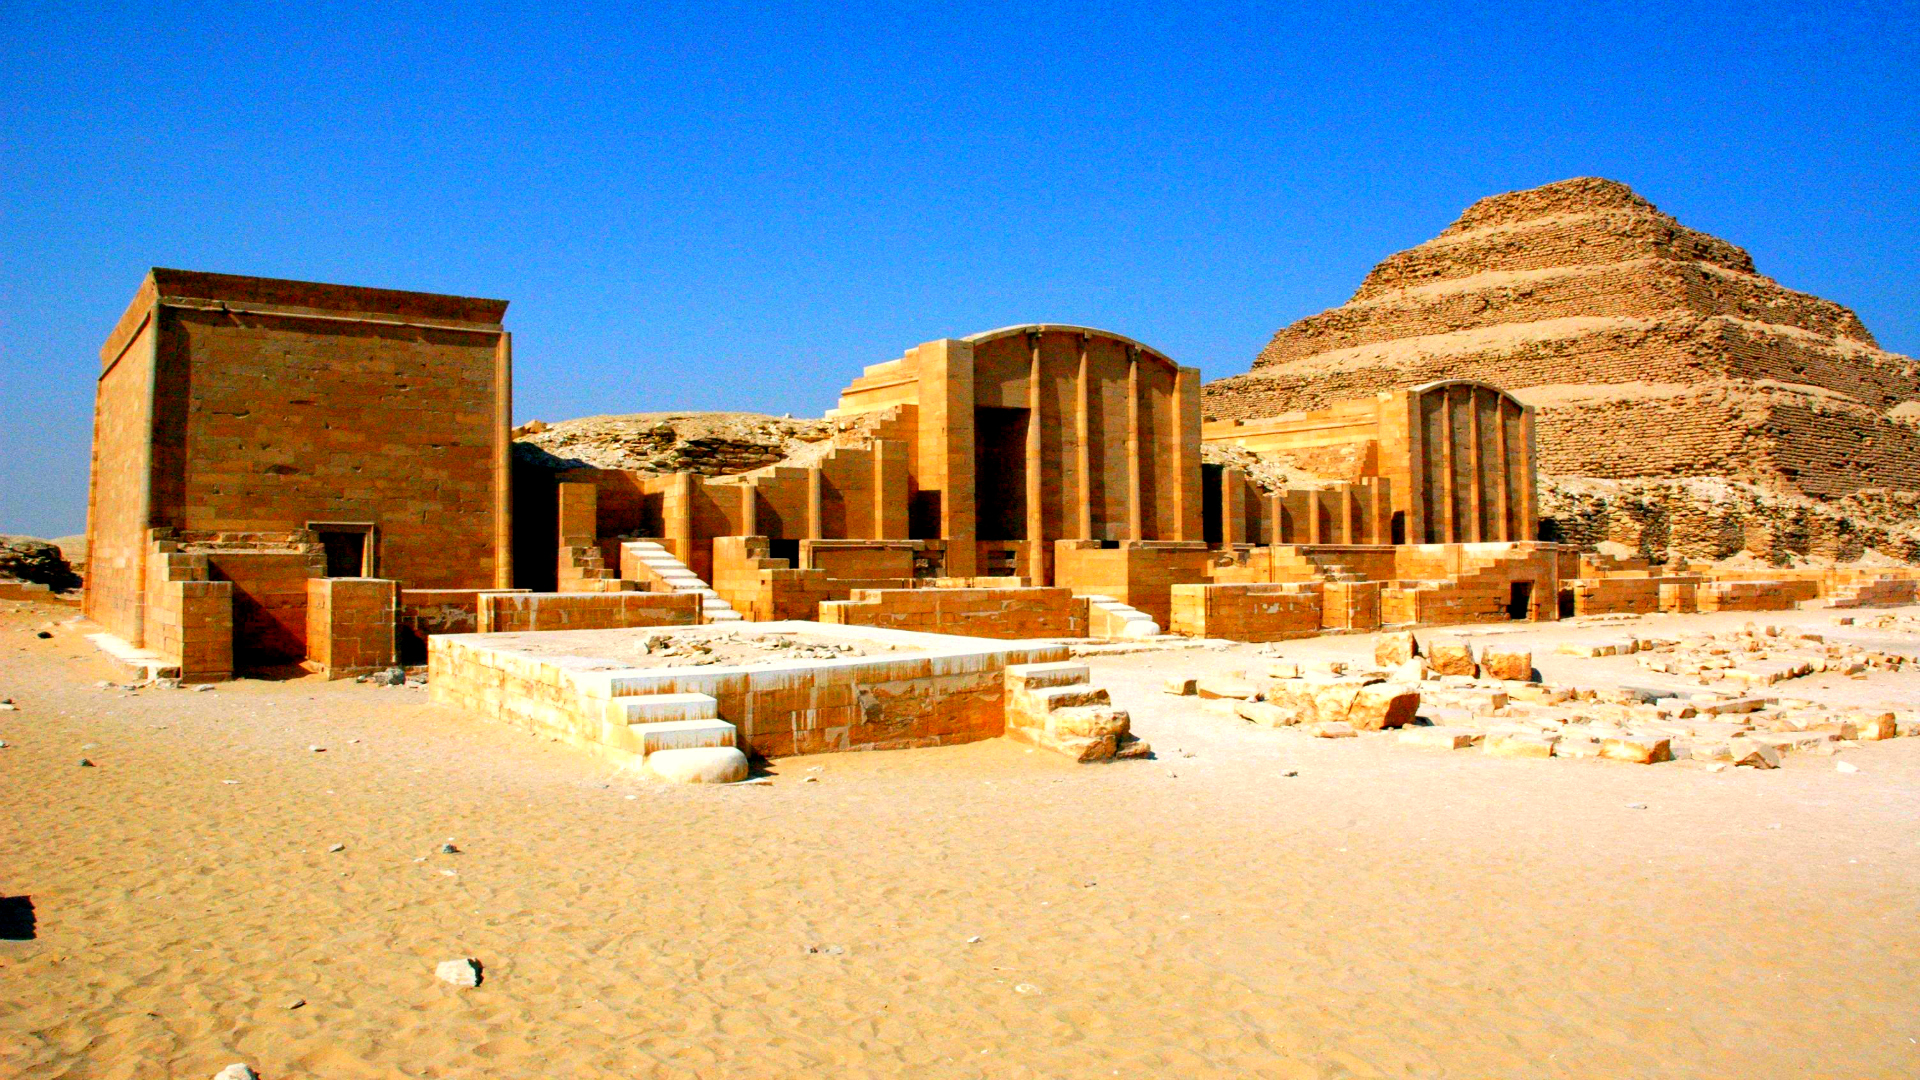 gypt Group Tours, Egypt Holiday Packages, Small Group Tours